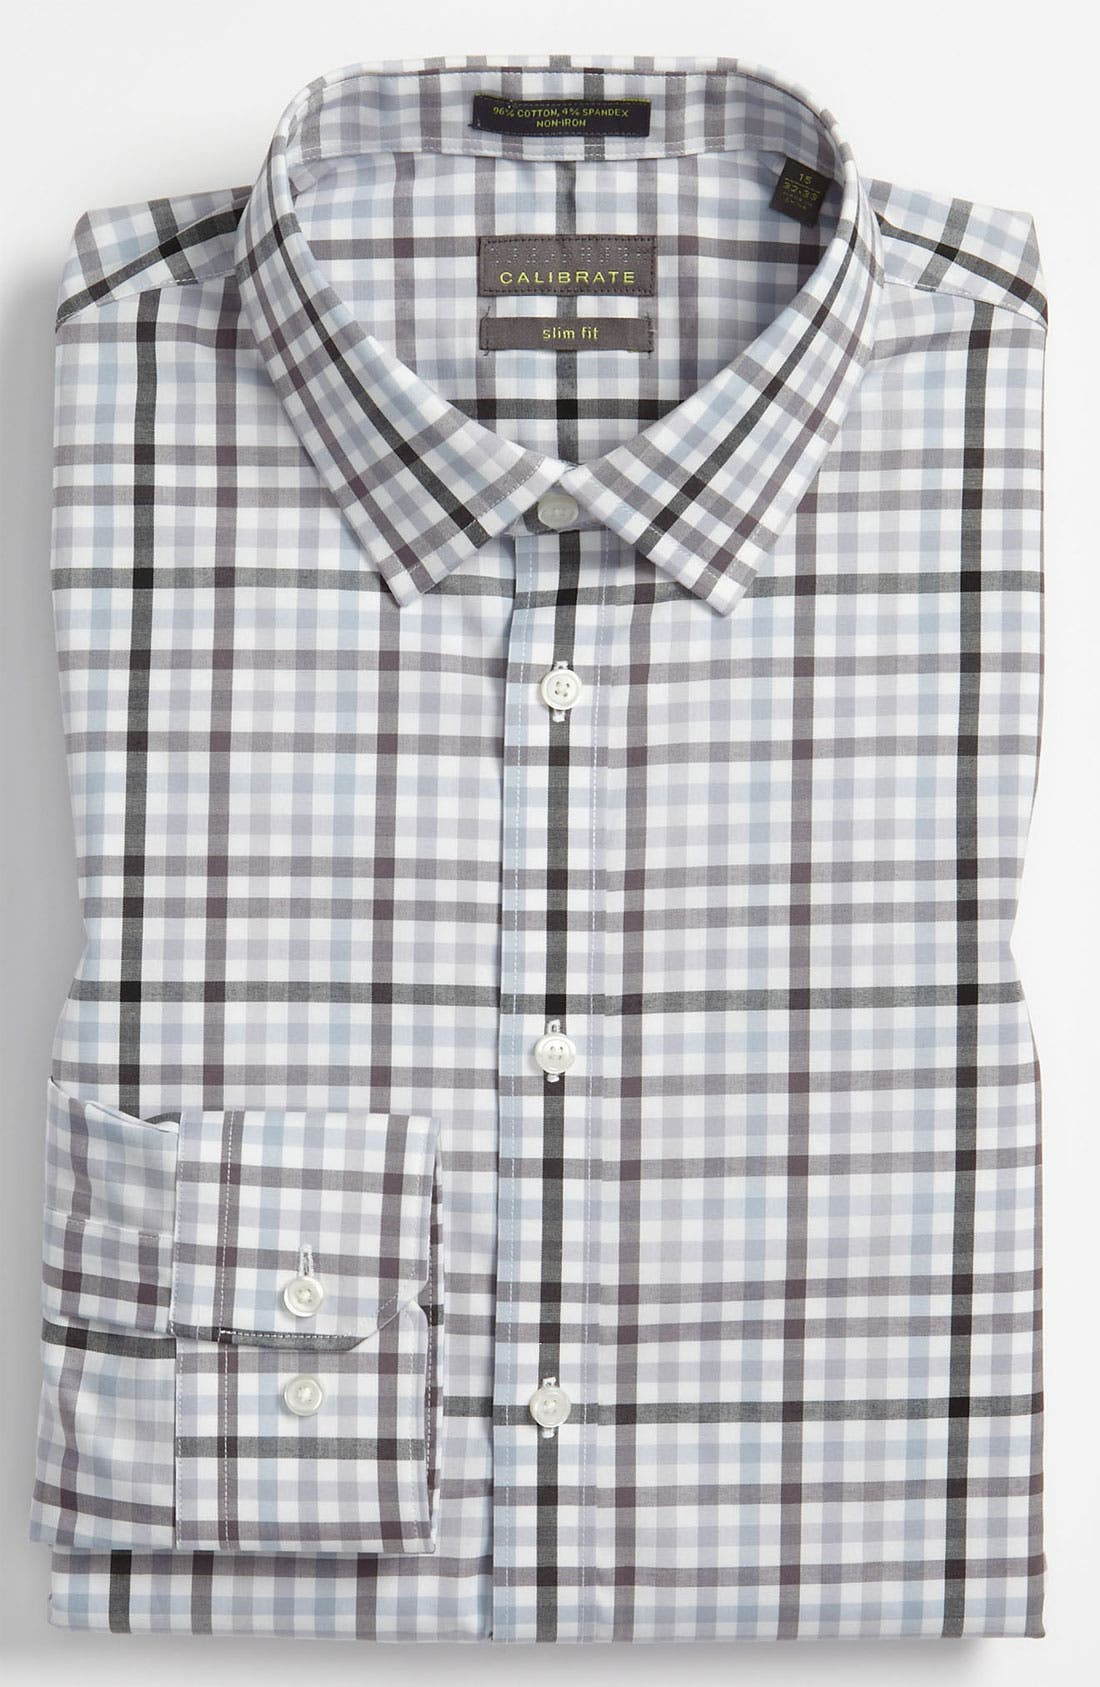 Alternate Image 1 Selected - Calibrate Slim Fit Non Iron Dress Shirt